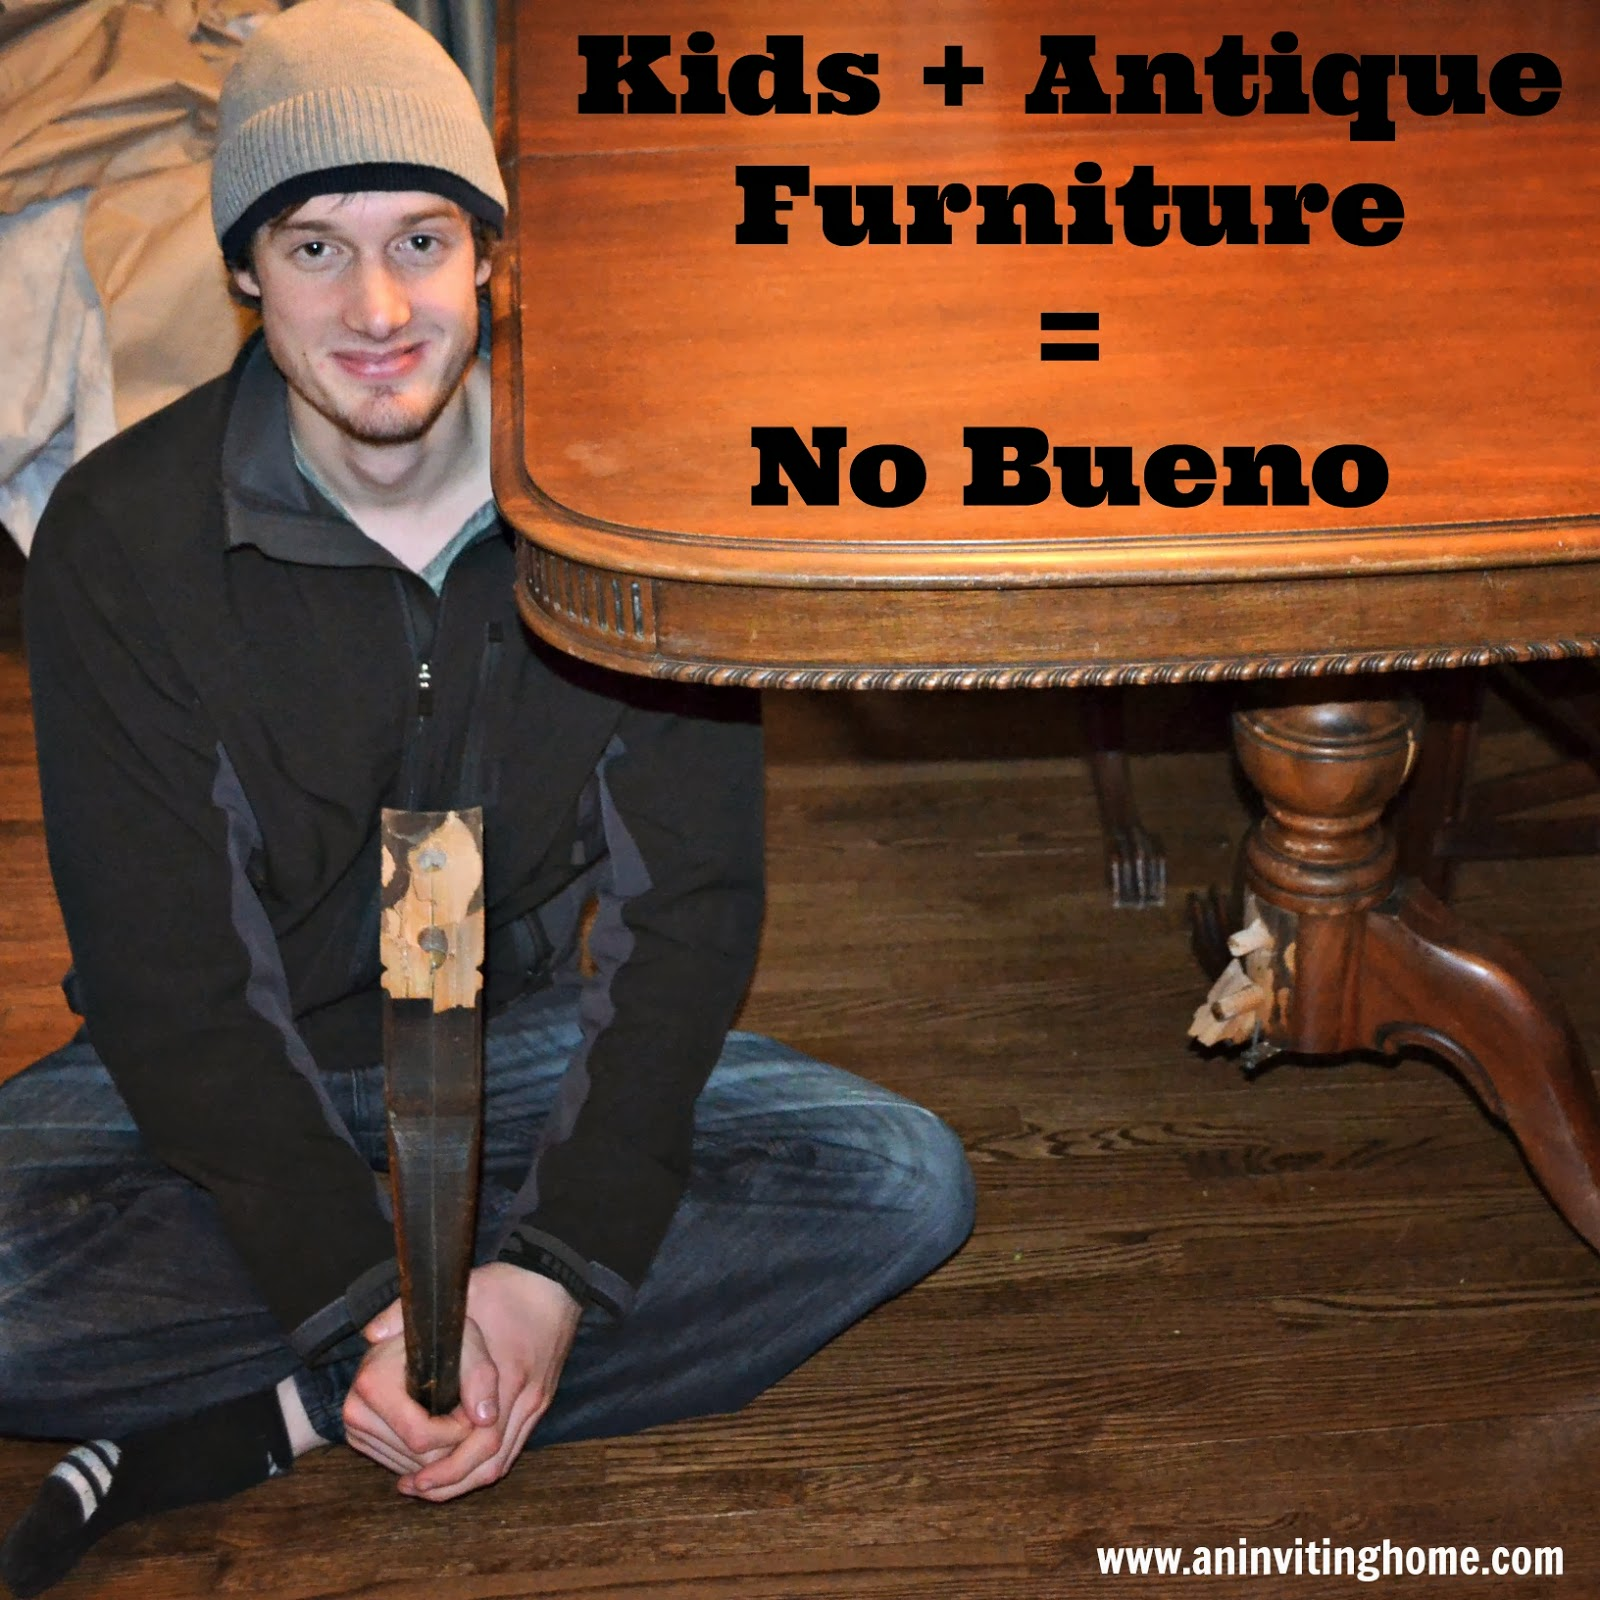 Kids Plus Antique Furniture Equals No Bueno